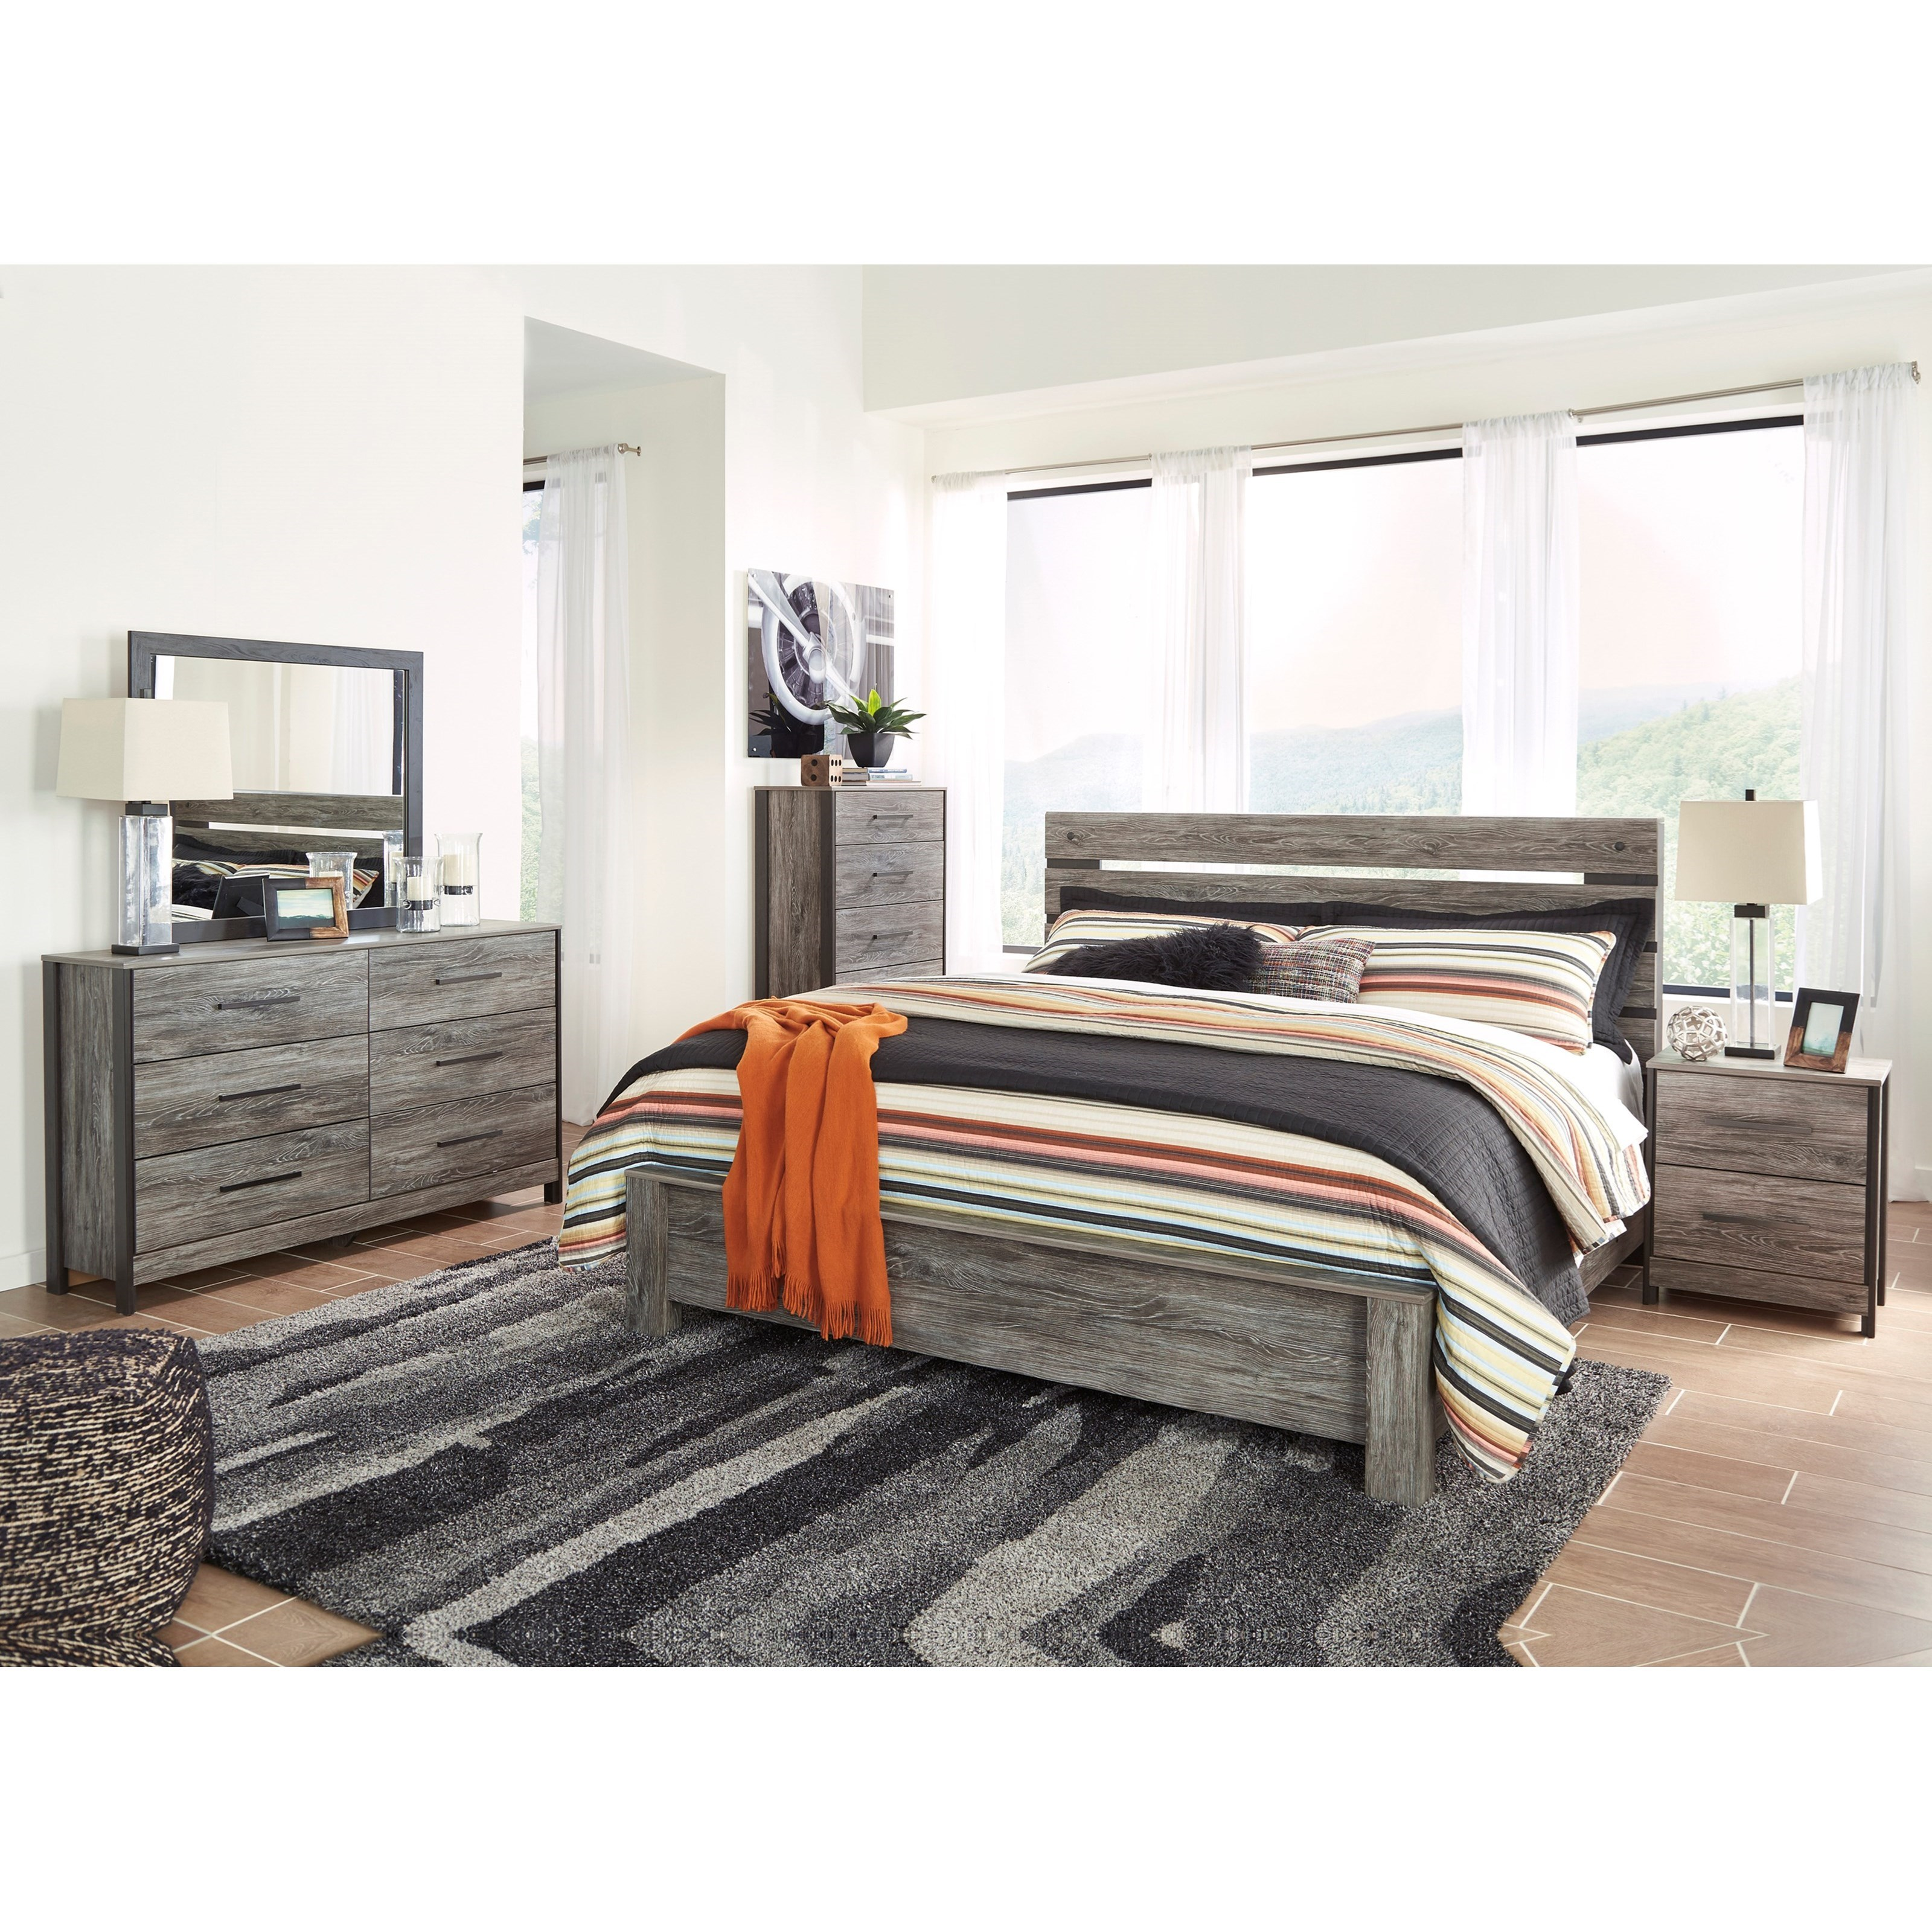 Signature Design by Ashley Cazenfeld King Bedroom Group